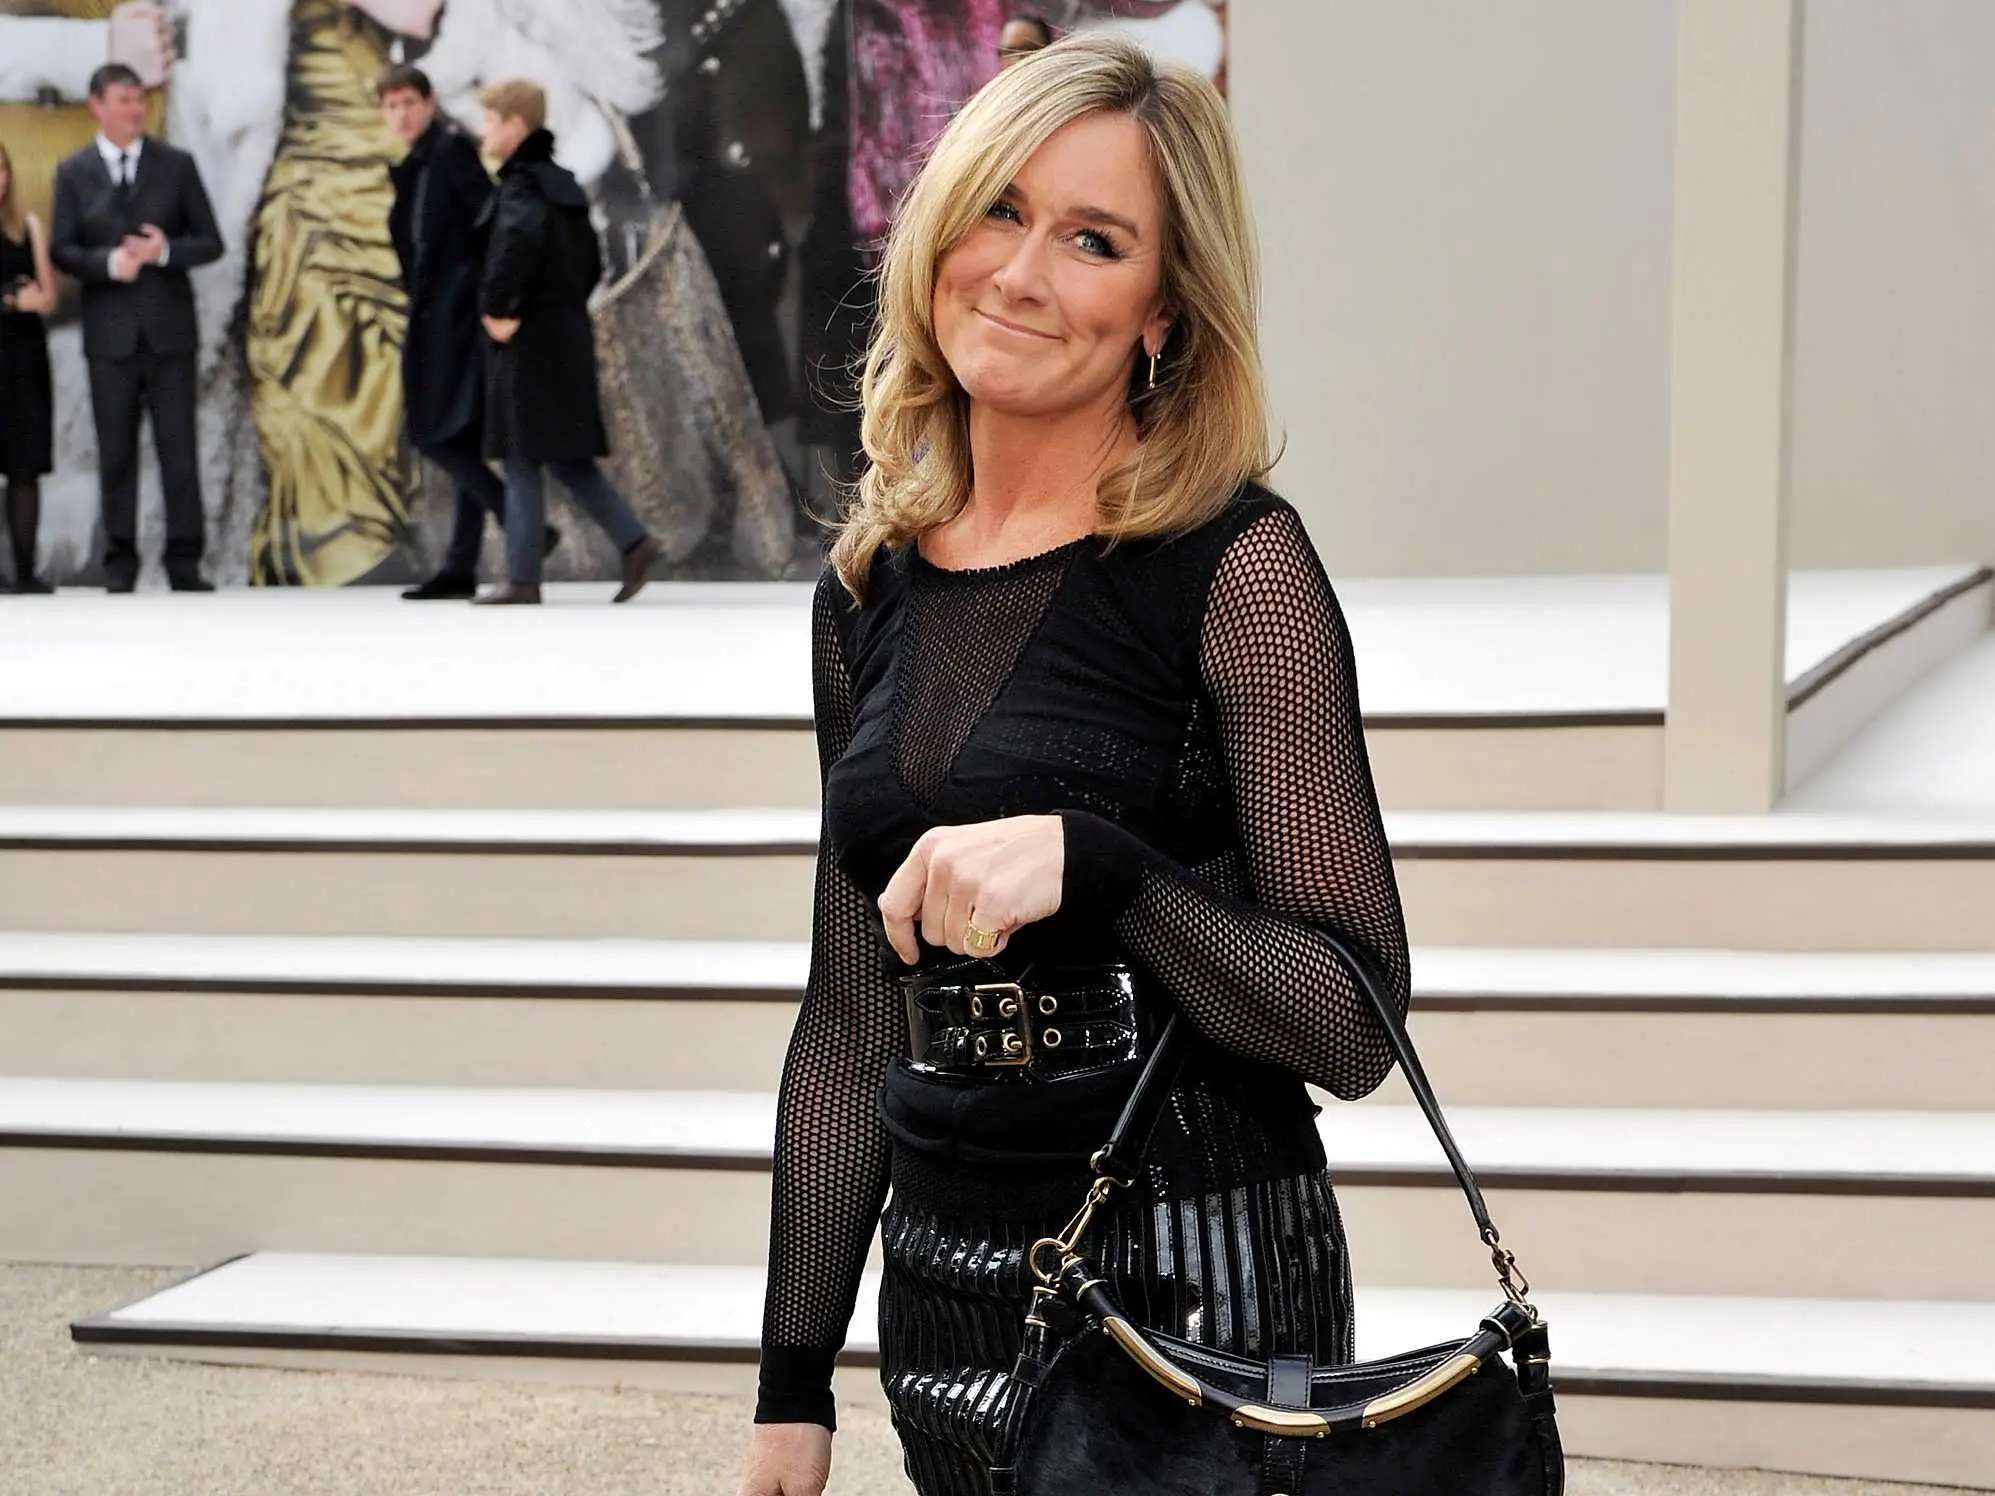 10. Angela Ahrendts, SVP of Retail and Online Stores, Apple